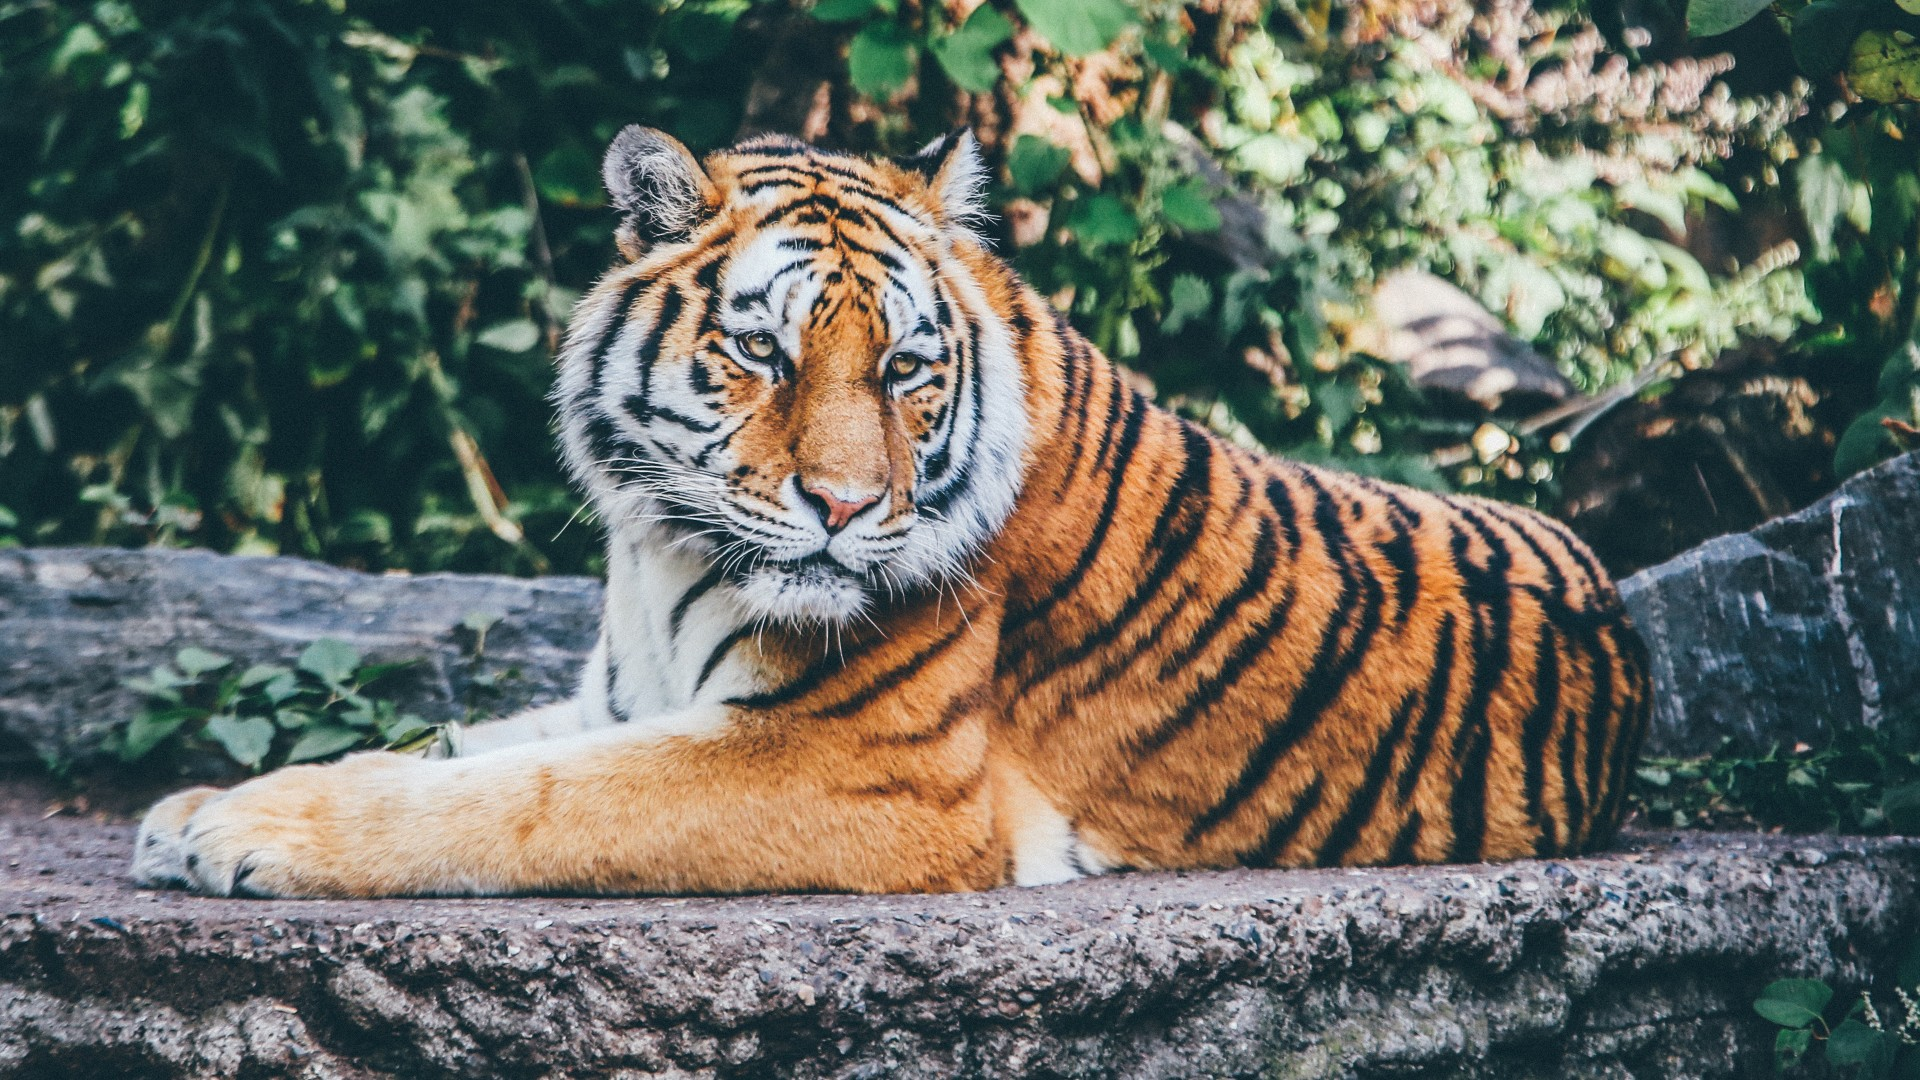 Download Beautiful Zoo Tiger Wallpaper In Hd Iphone 7 Plus Iphone